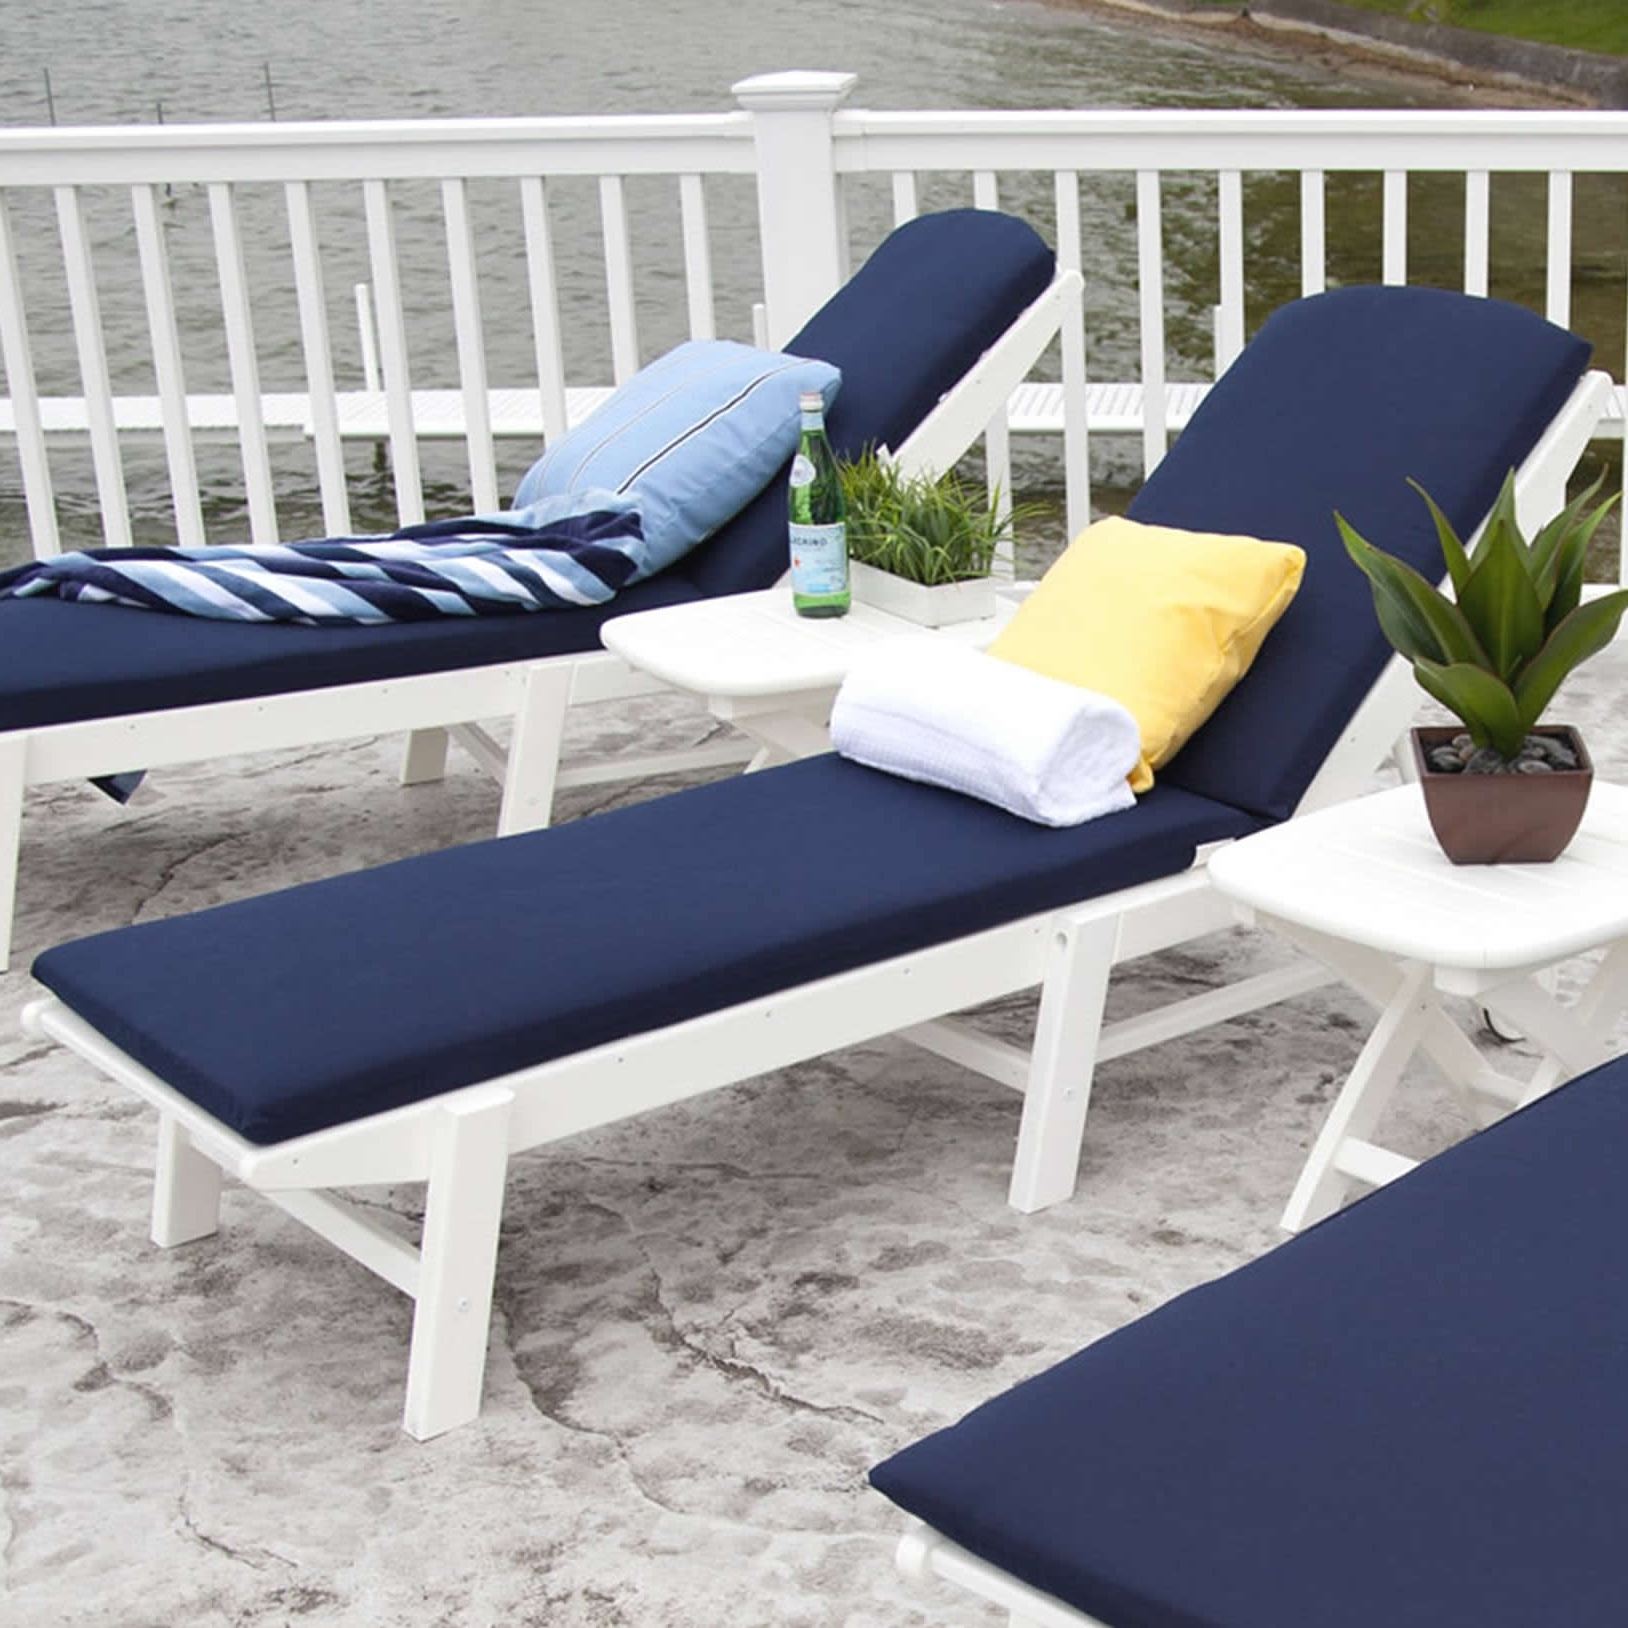 Polywood Nautical Chaise Lounge Cushions With Most Up To Date Chaise Lounge Chair Cushions (View 12 of 15)